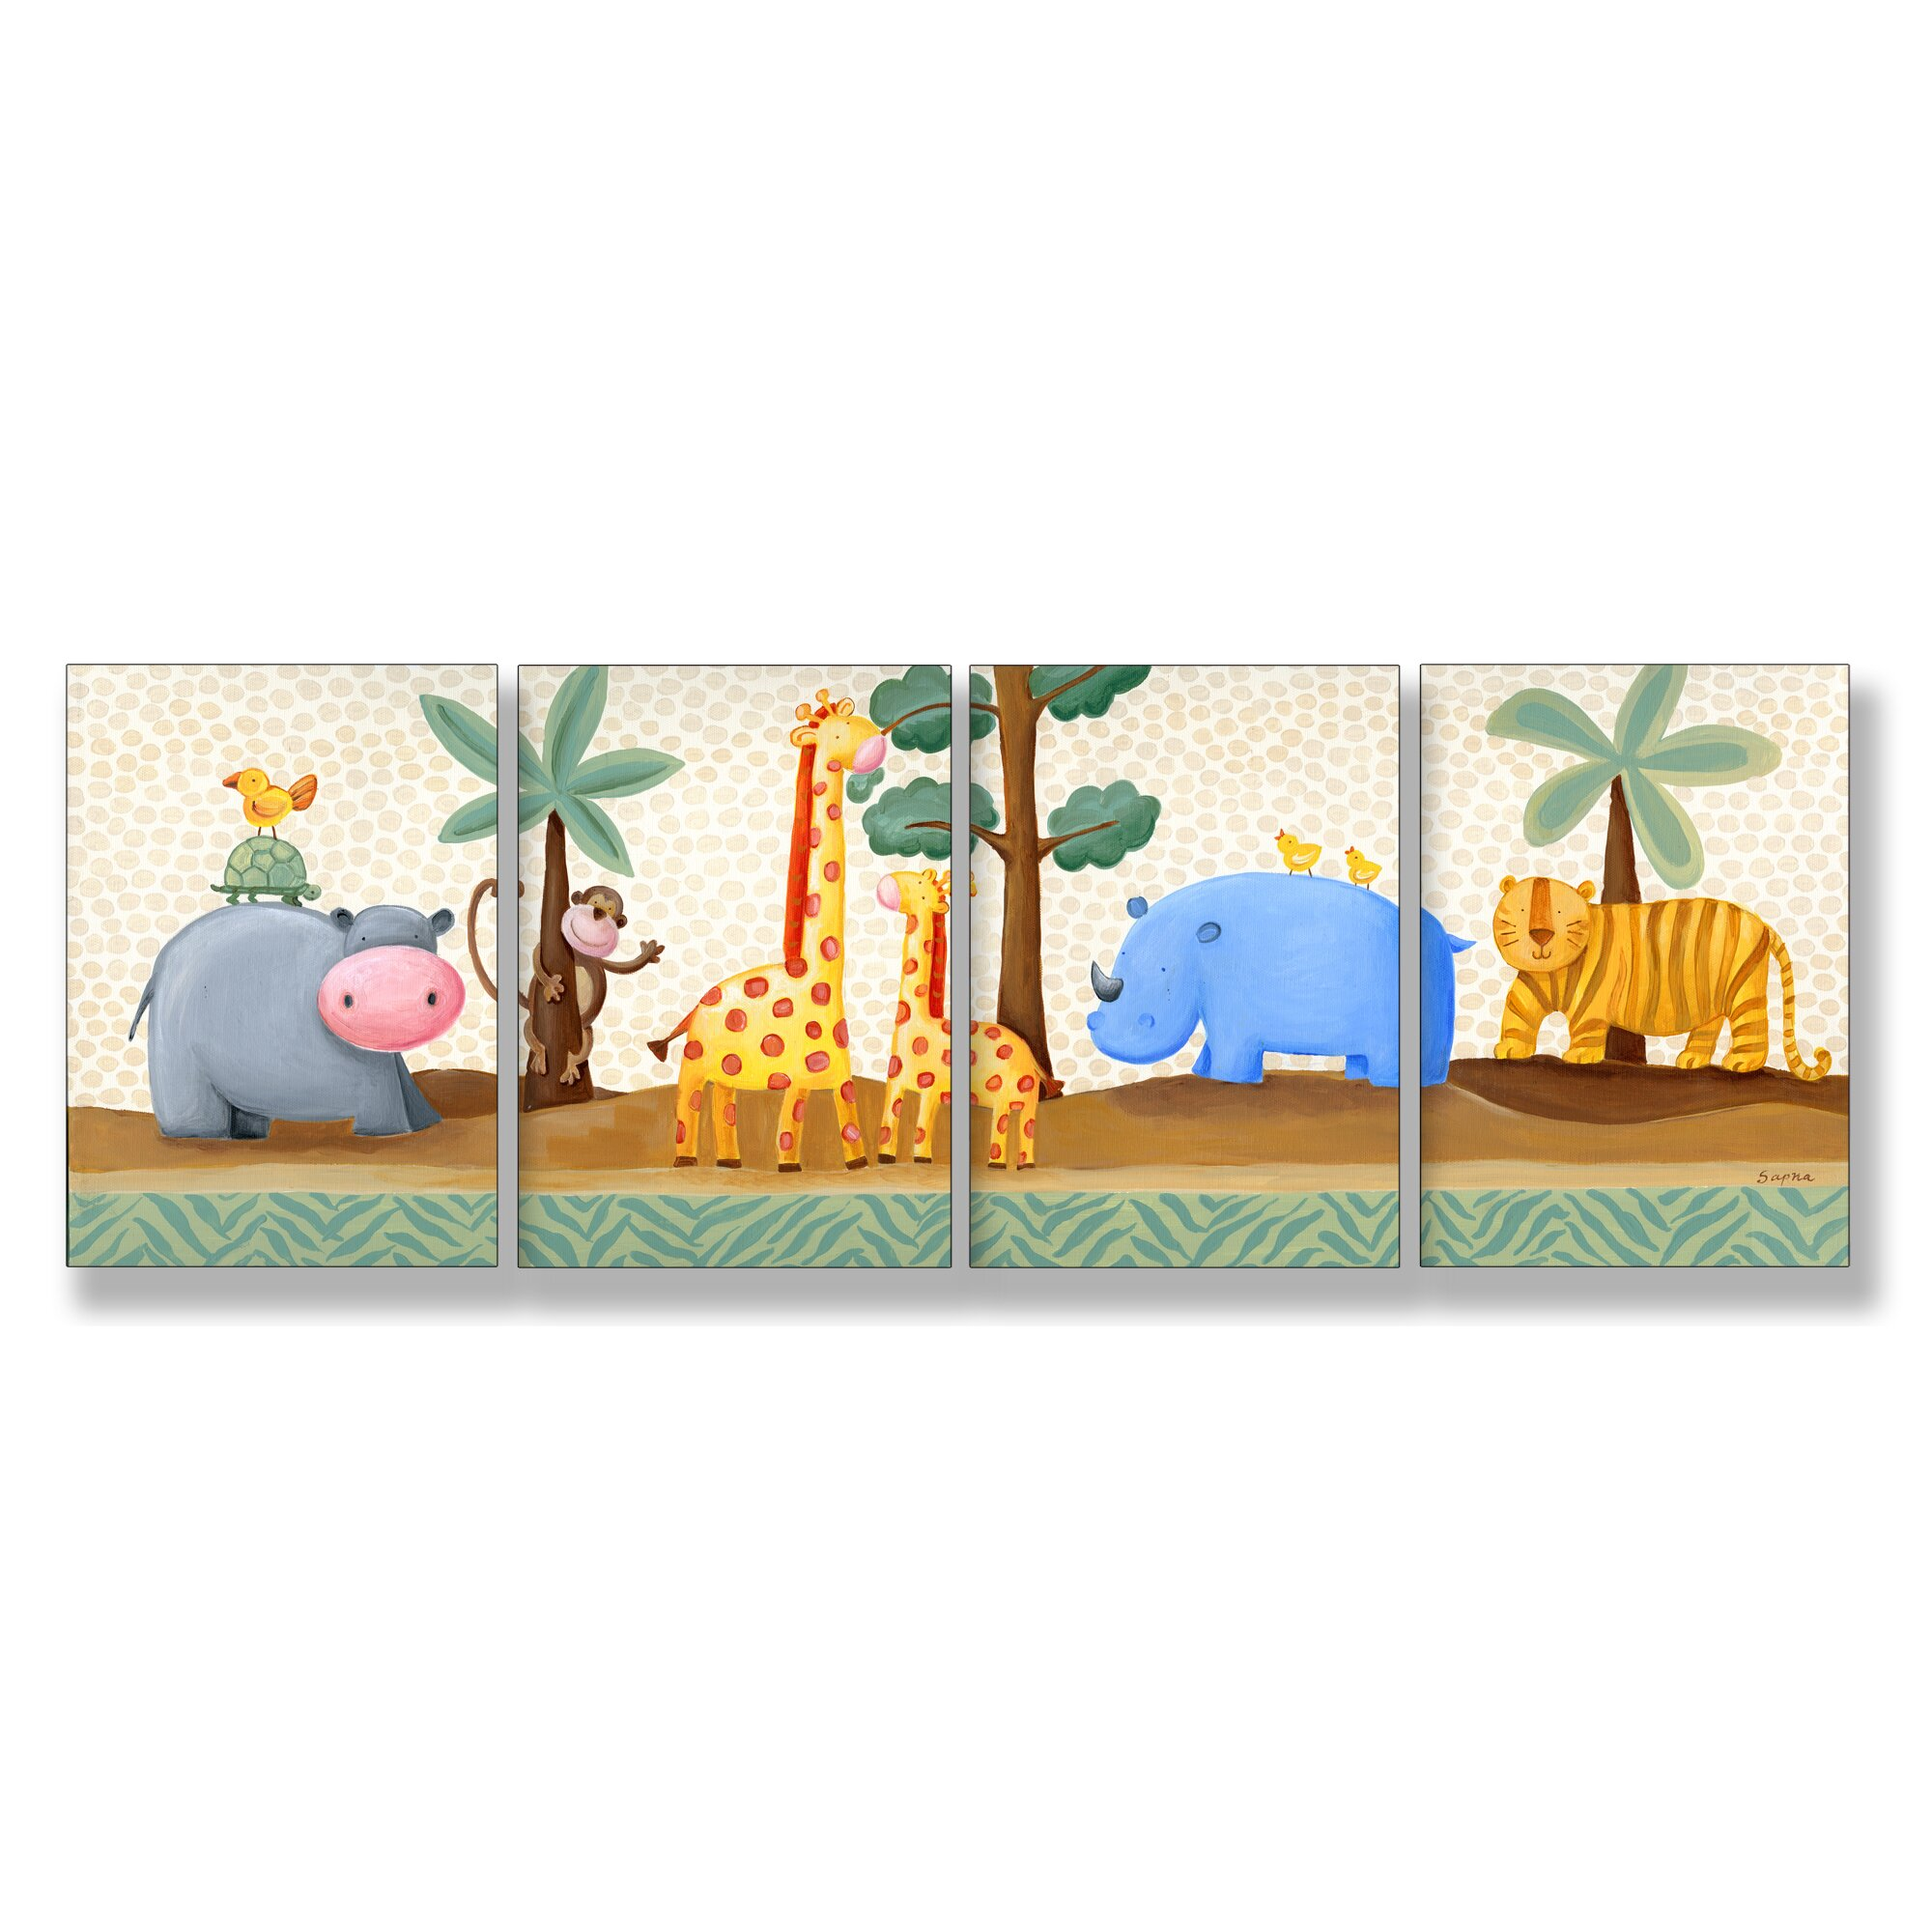 valances for bedroom stupell industries the room hippo giraffe rhino 13704